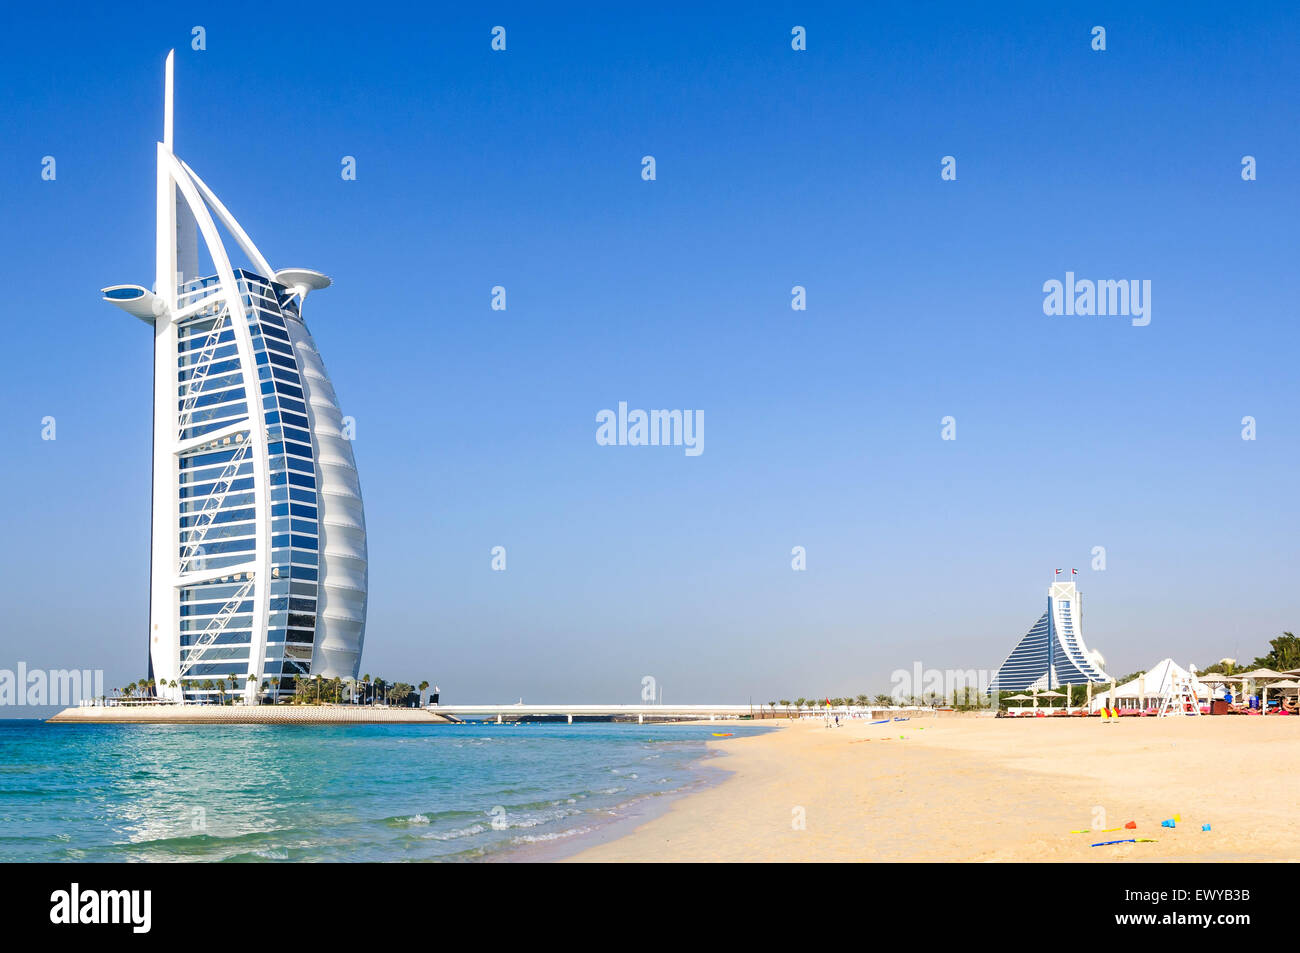 Dubai, United Arab Emirates - January 08, 2012: View of Burj Al Arab hotel from the Jumeirah beach. Burj Al Arab - Stock Image